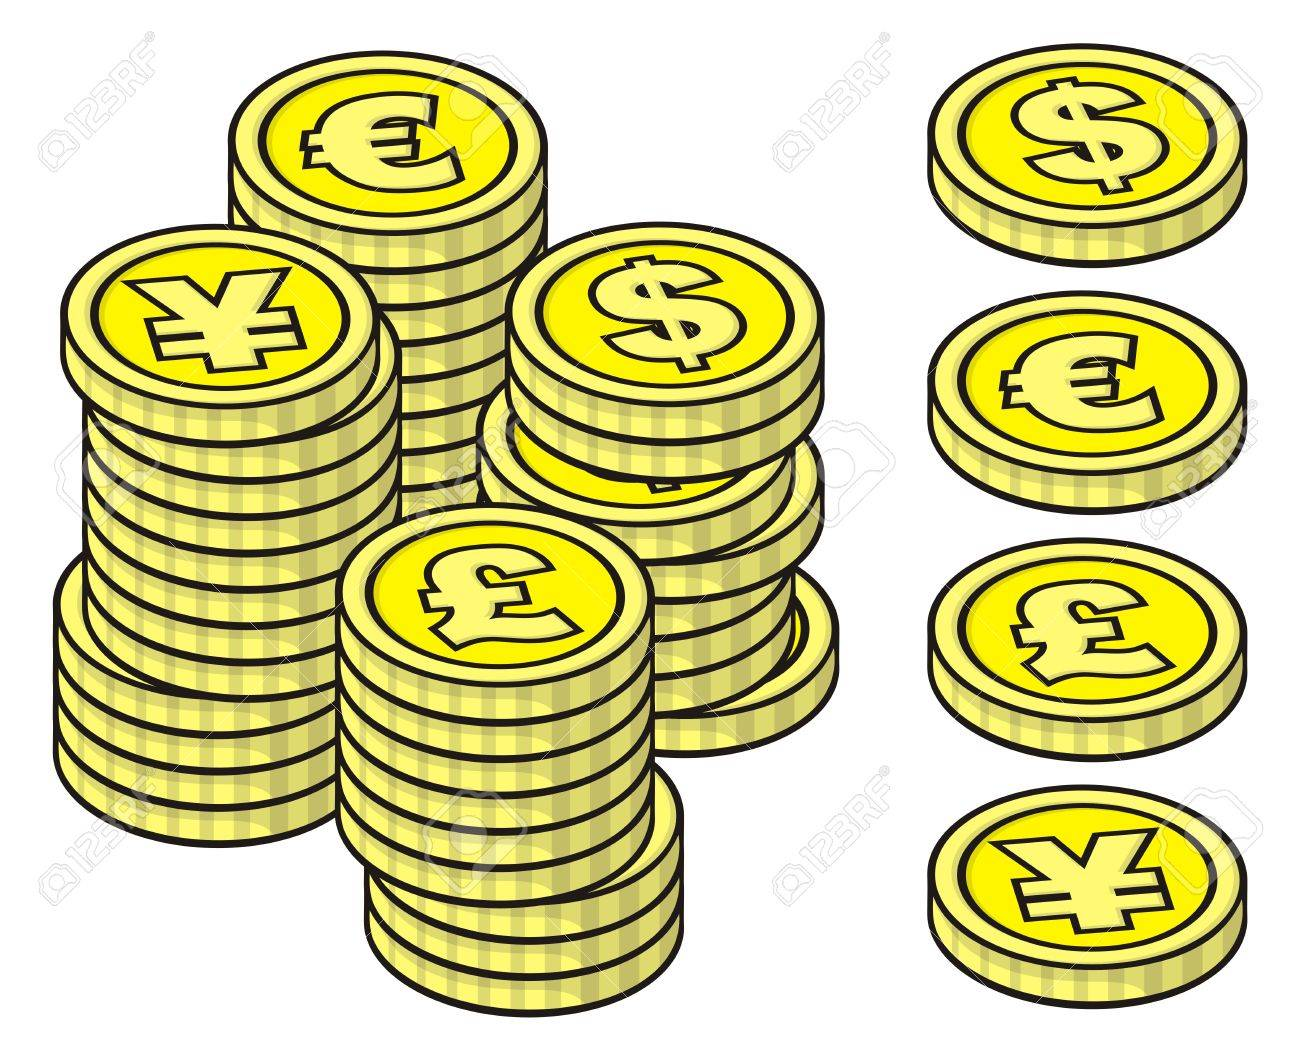 Four yellow stackable coins on white background with example stacks. - 9448175